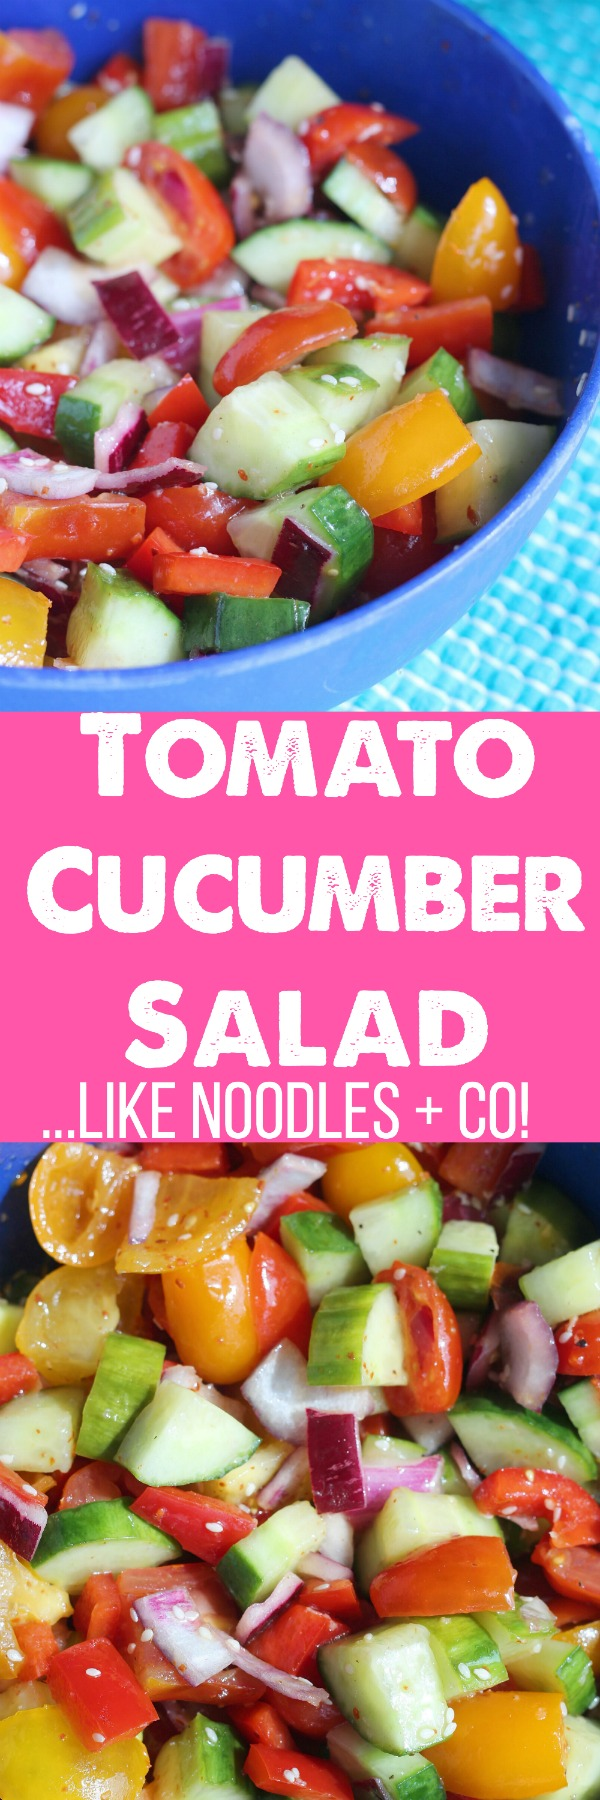 Do you LOVE the Noodles + Co. Tomato Cucumber Salad? This copycat is even better! via @DashOfEvans